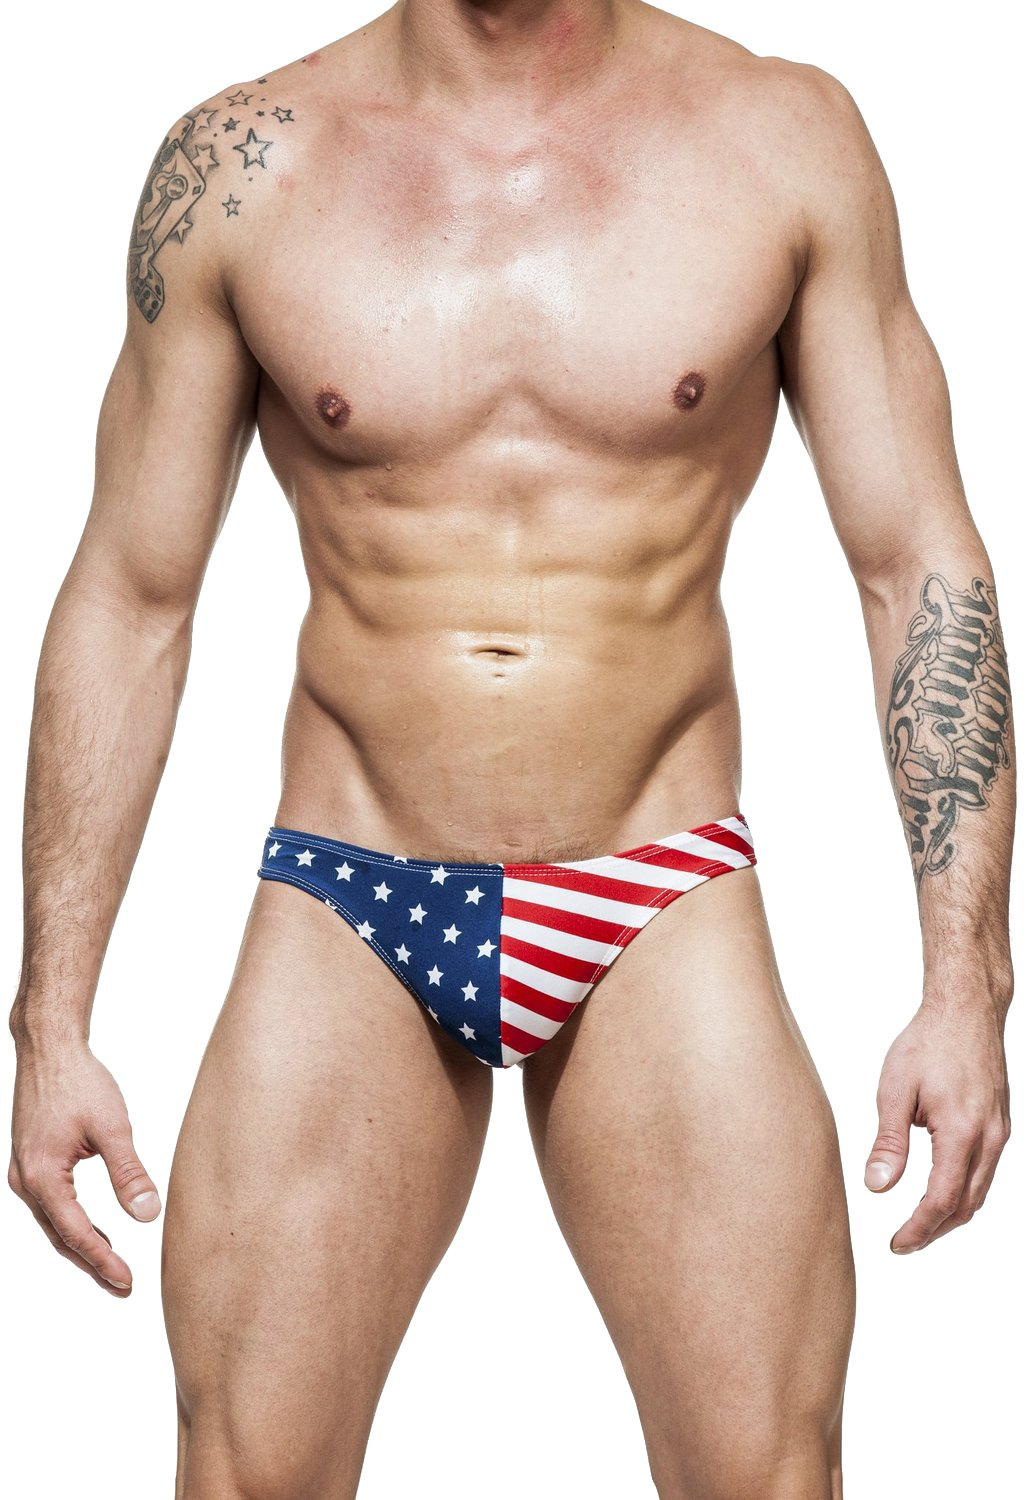 Men's USA American Flag Thong Swimsuit By Gary Majdell Sport Stars and Stripes Medium